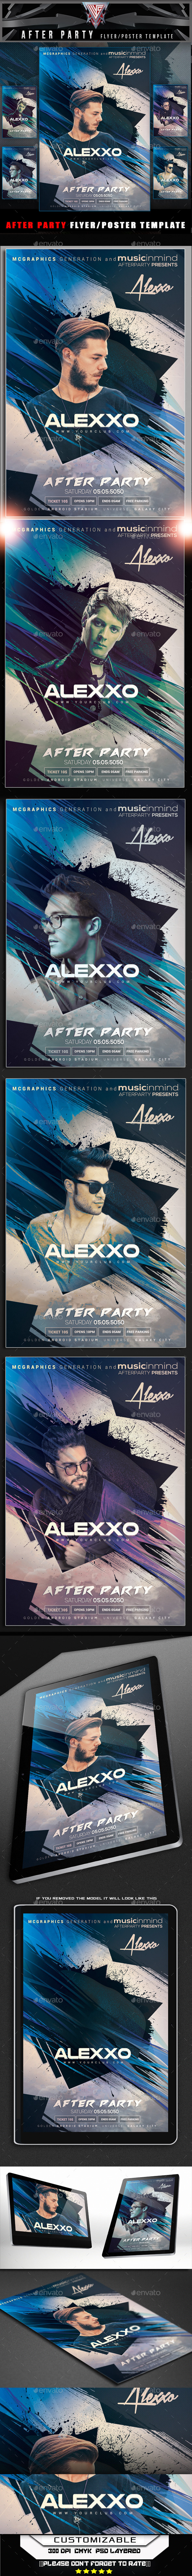 After Party Flyer Template - Flyers Print Templates